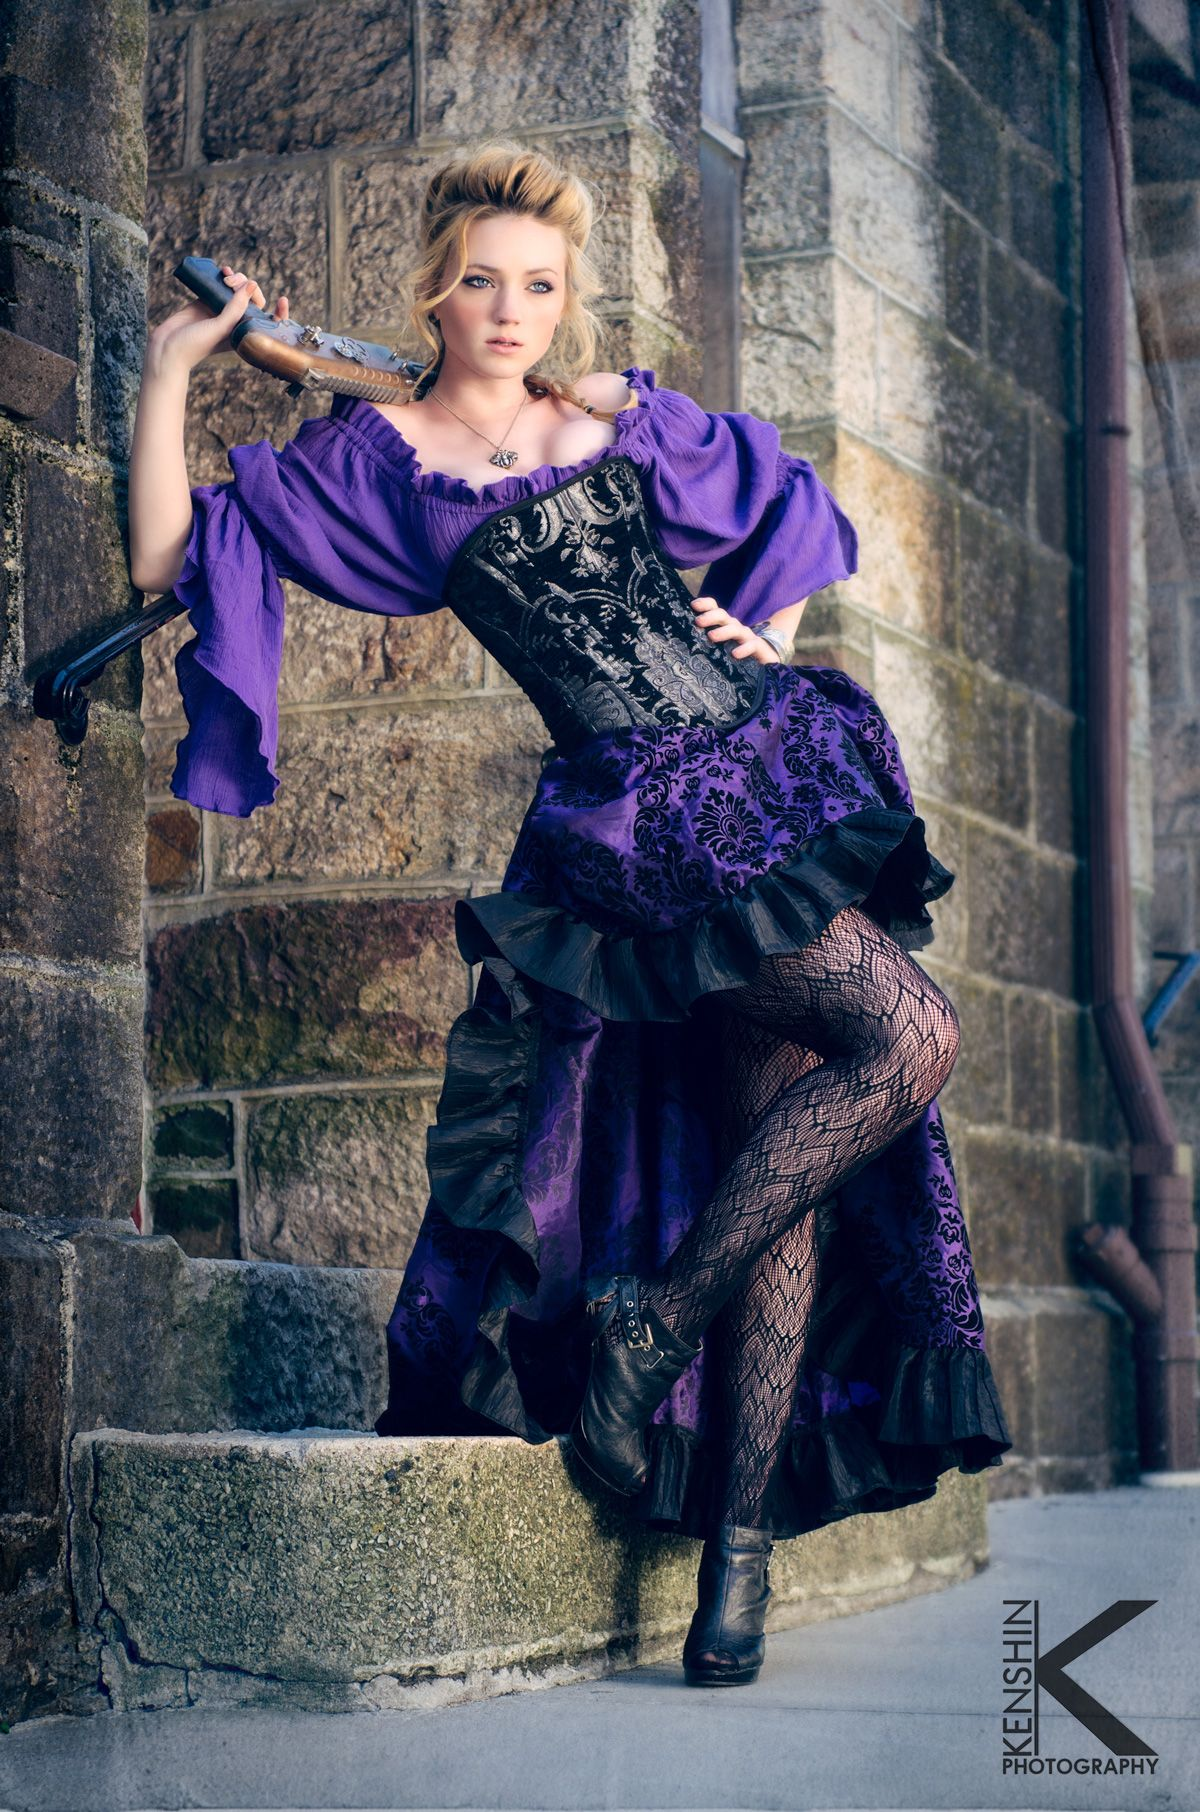 Photography by kenshin photography steampunk fashion pinterest